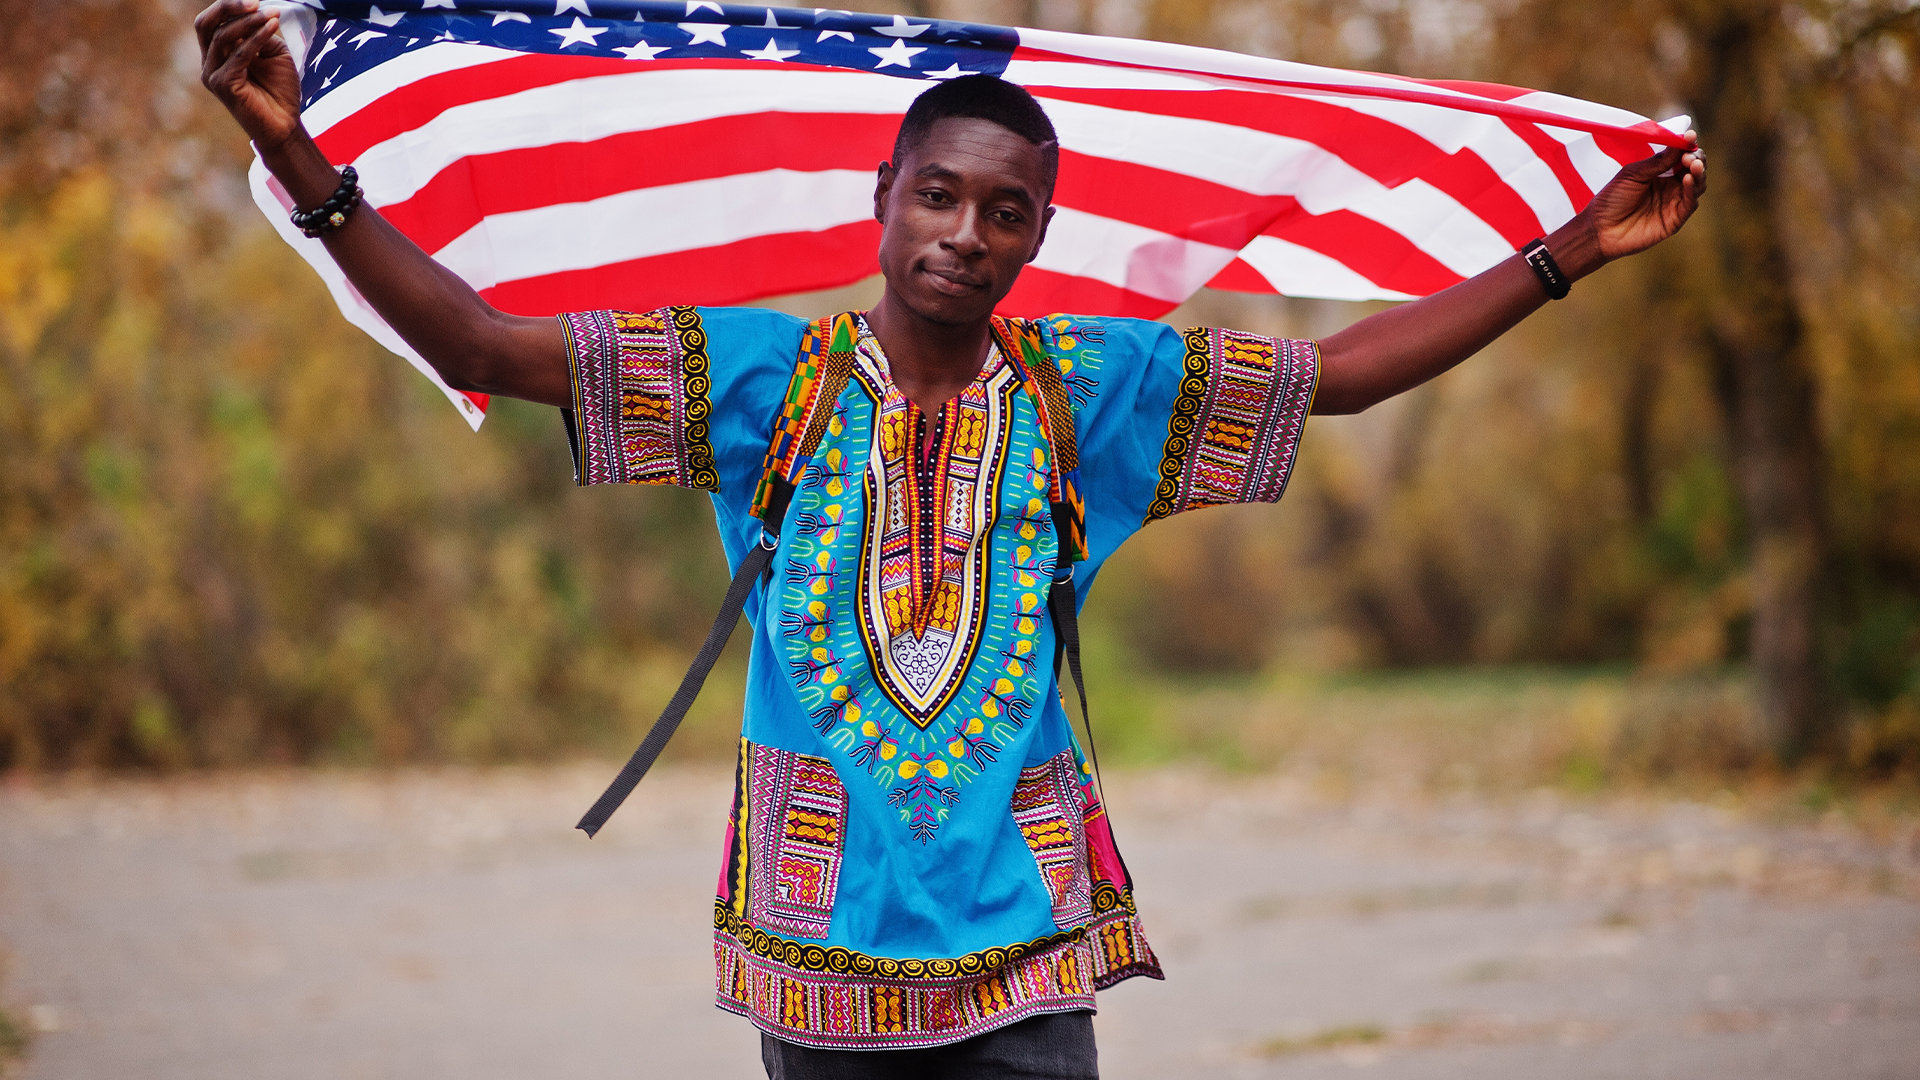 A picture of Heaven? African man holding the US flag over his head looking chuffed